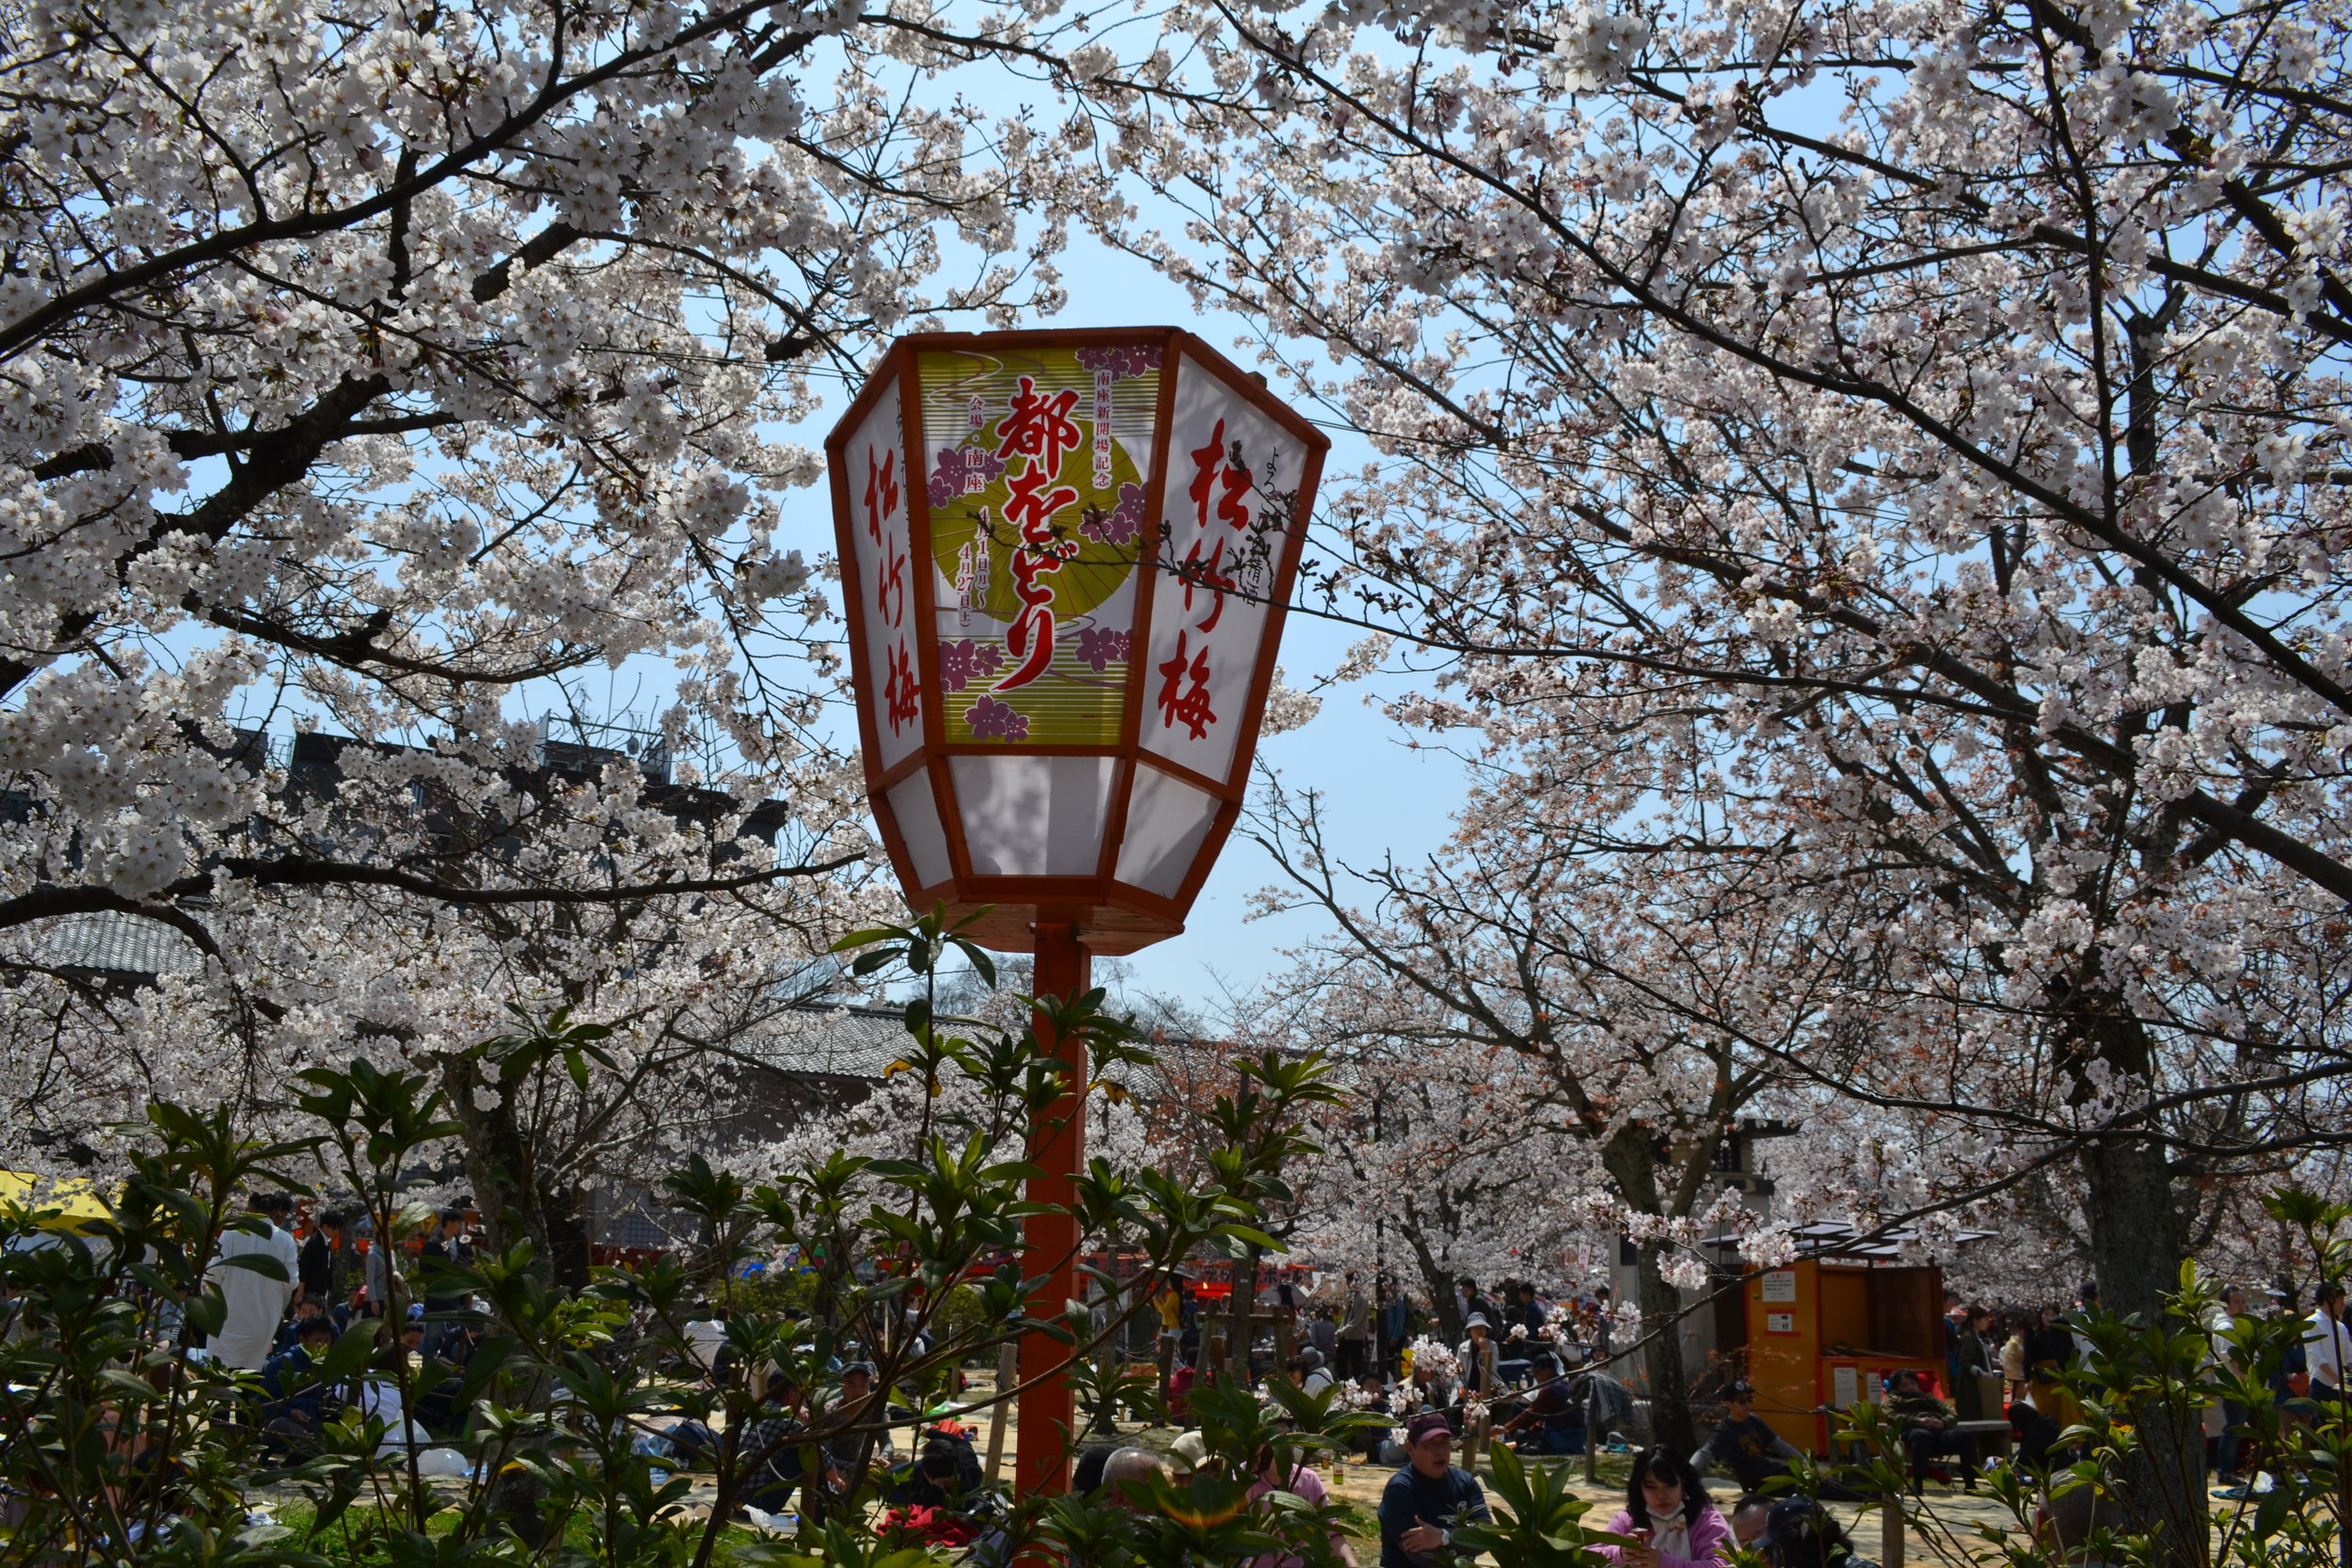 A festival lantern with cherry blossoms and hanami-enjoyers in the background.